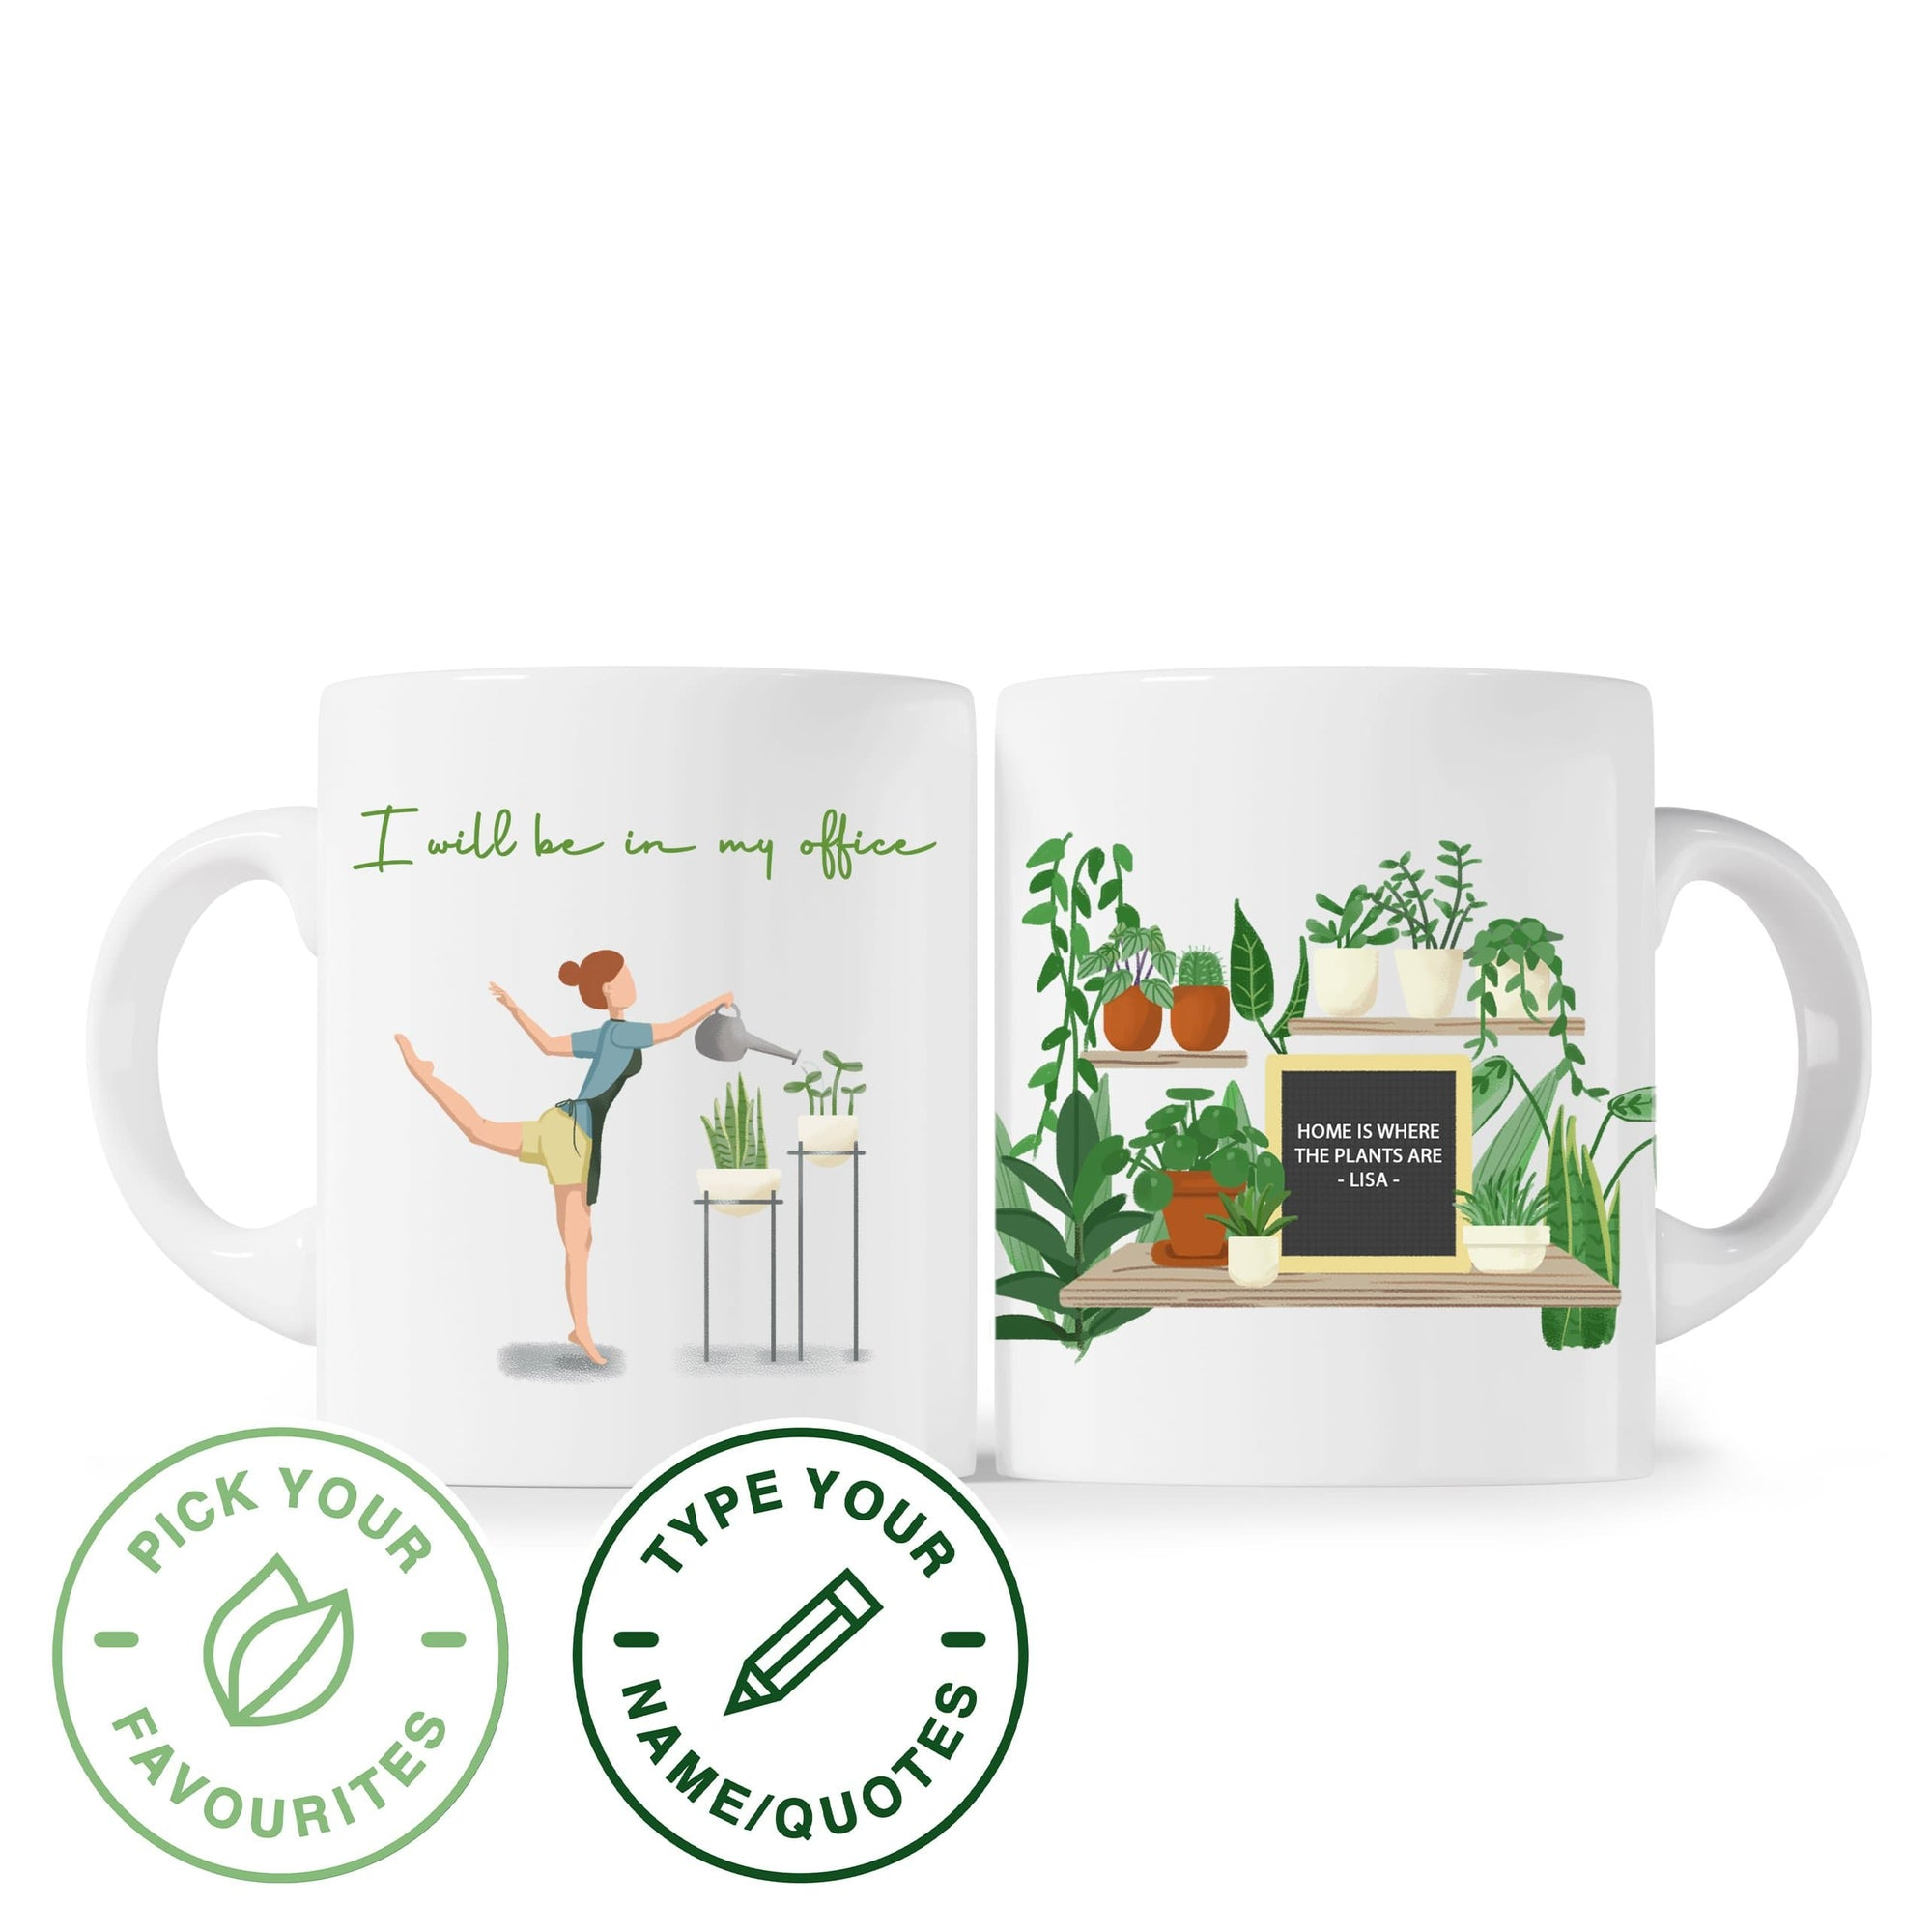 Mug I Will Be In My Office - Personalized Mug Plantspree